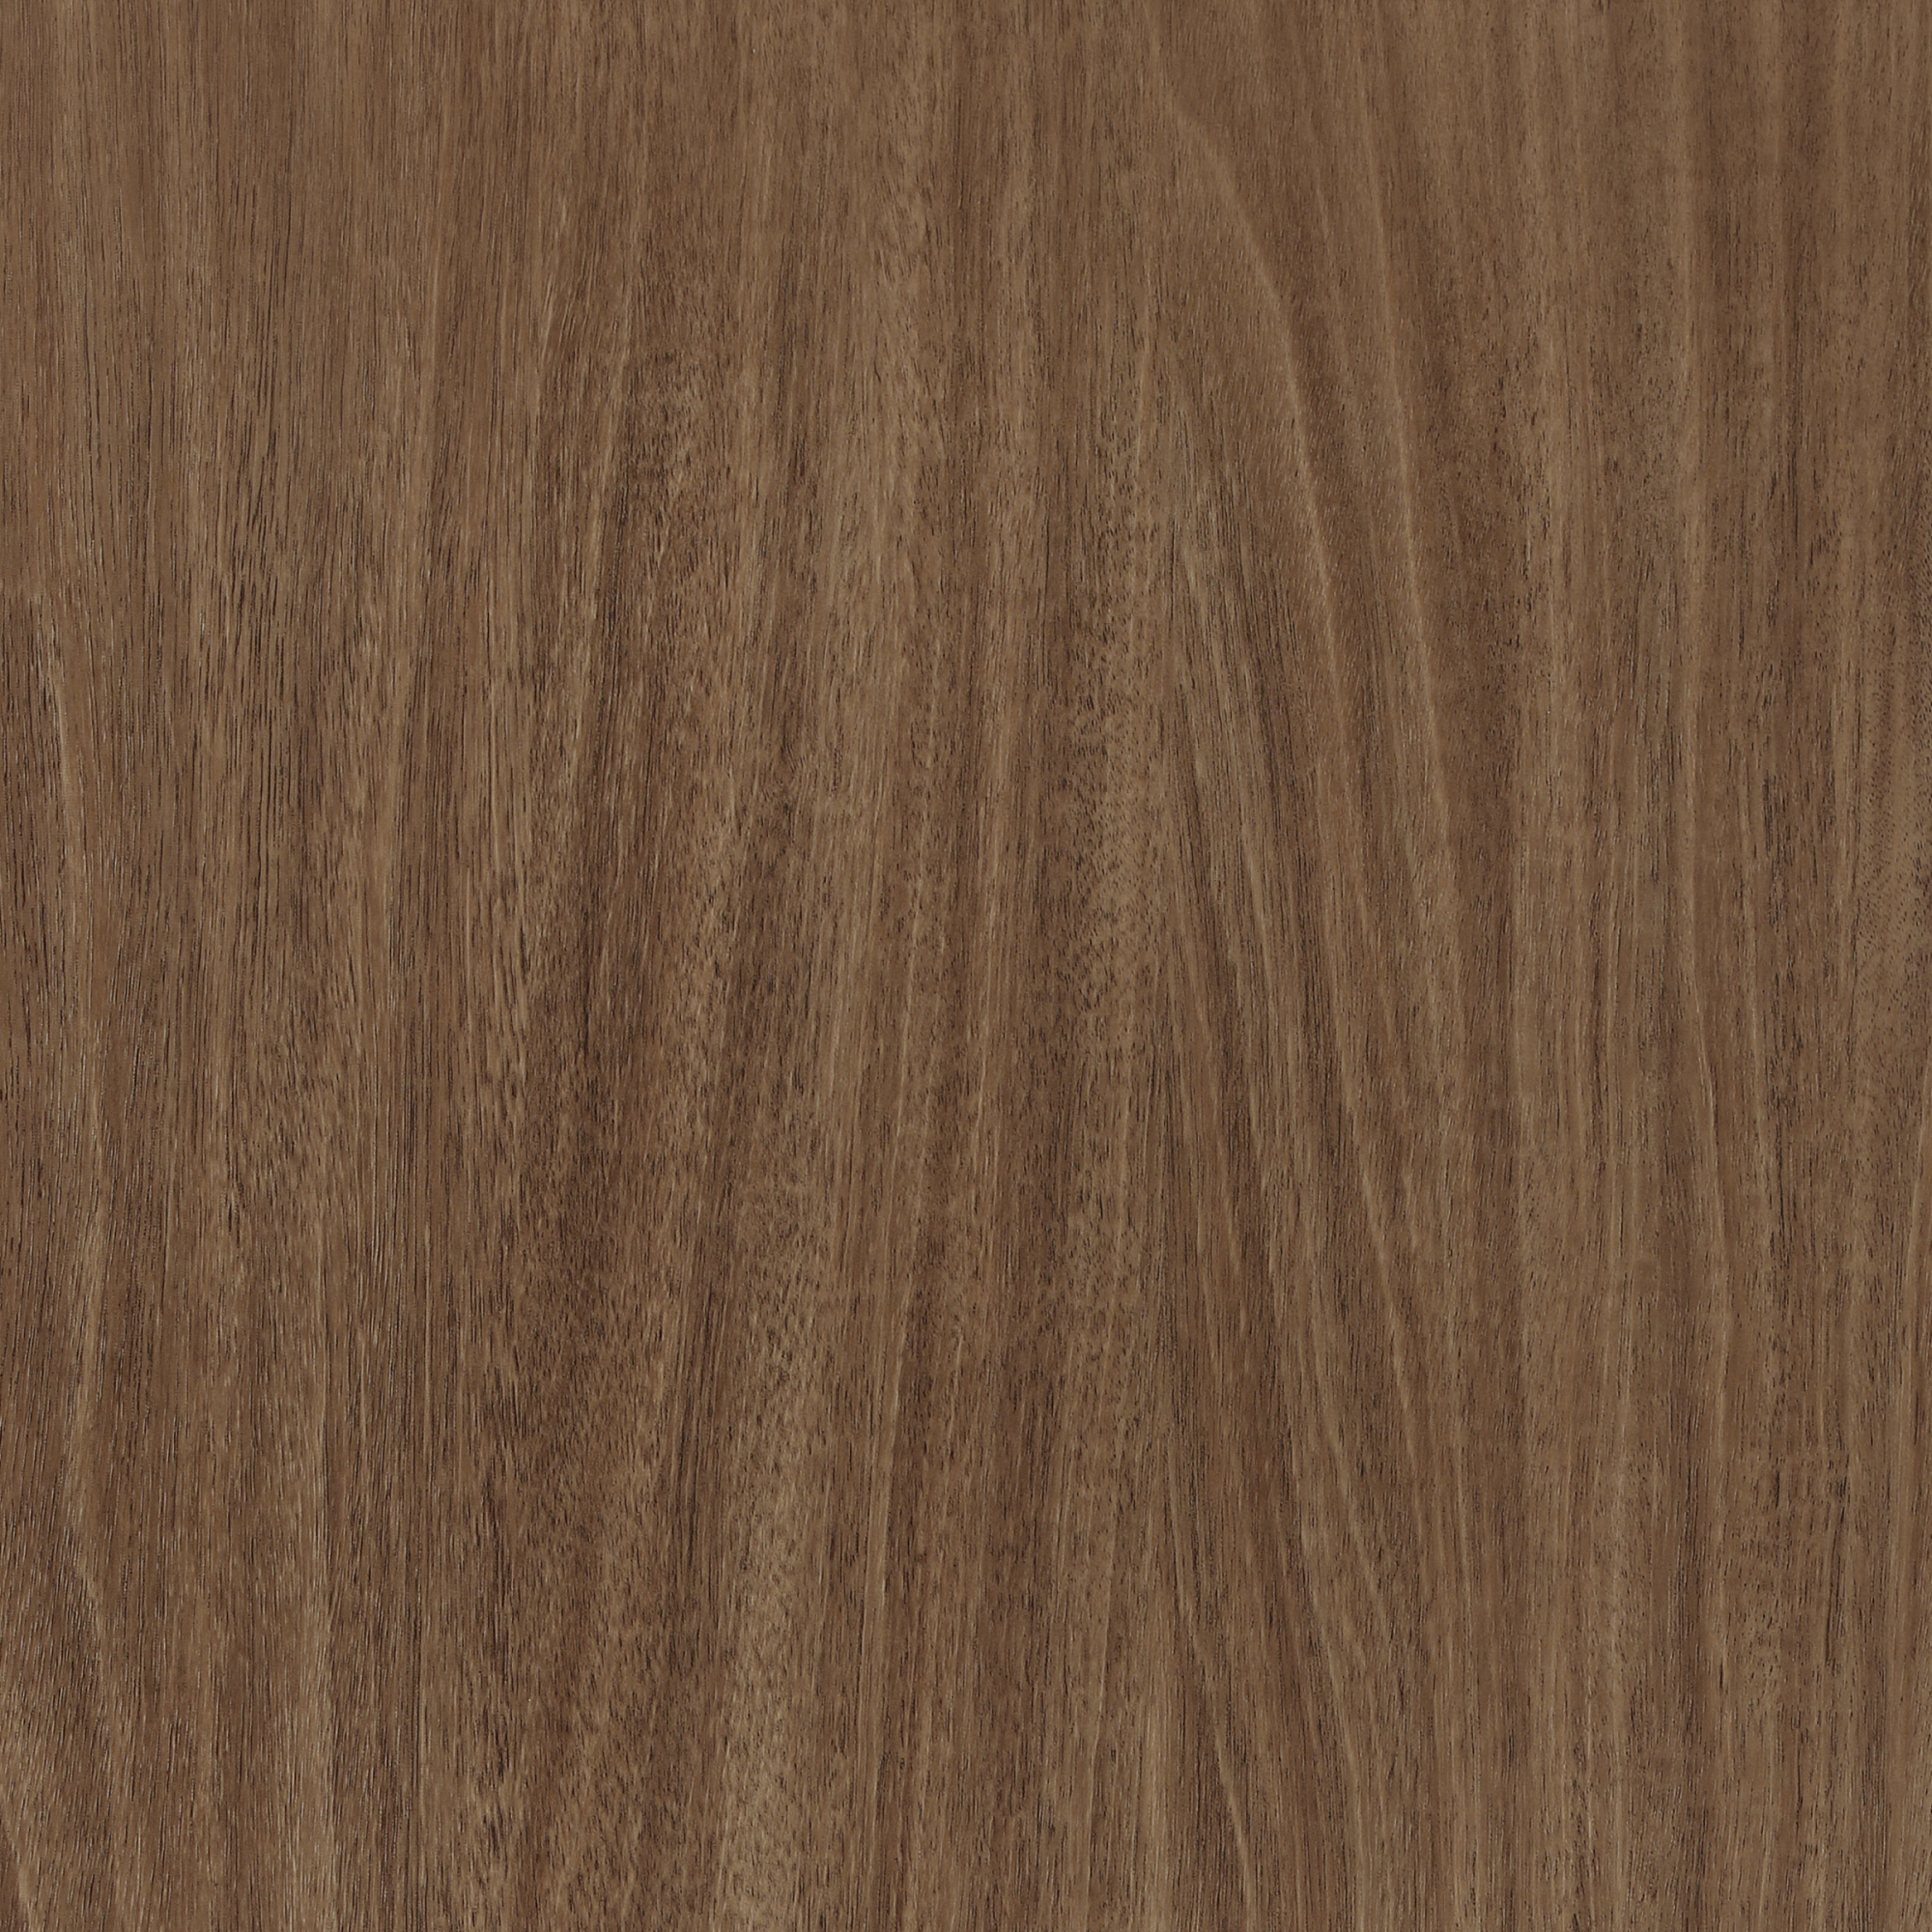 Image for Weathered Walnut Thermoshield™ Sample from SmartMoves